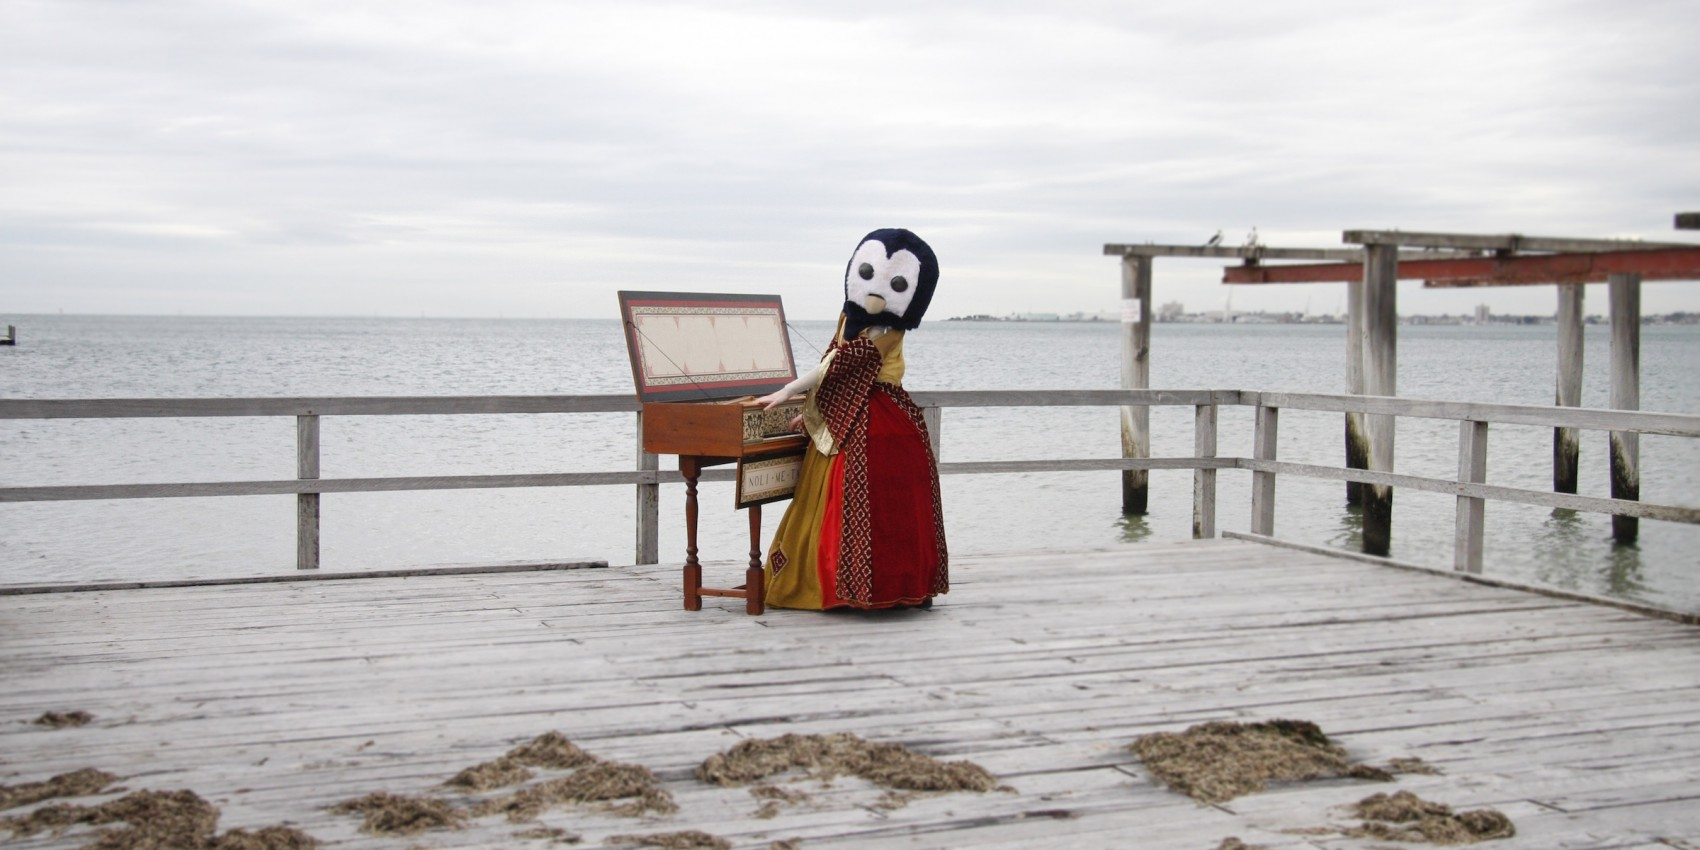 A pier at a beach on which is placed a person in elaborate costume, a large penguin mask, playing an old-fashioned keyboard